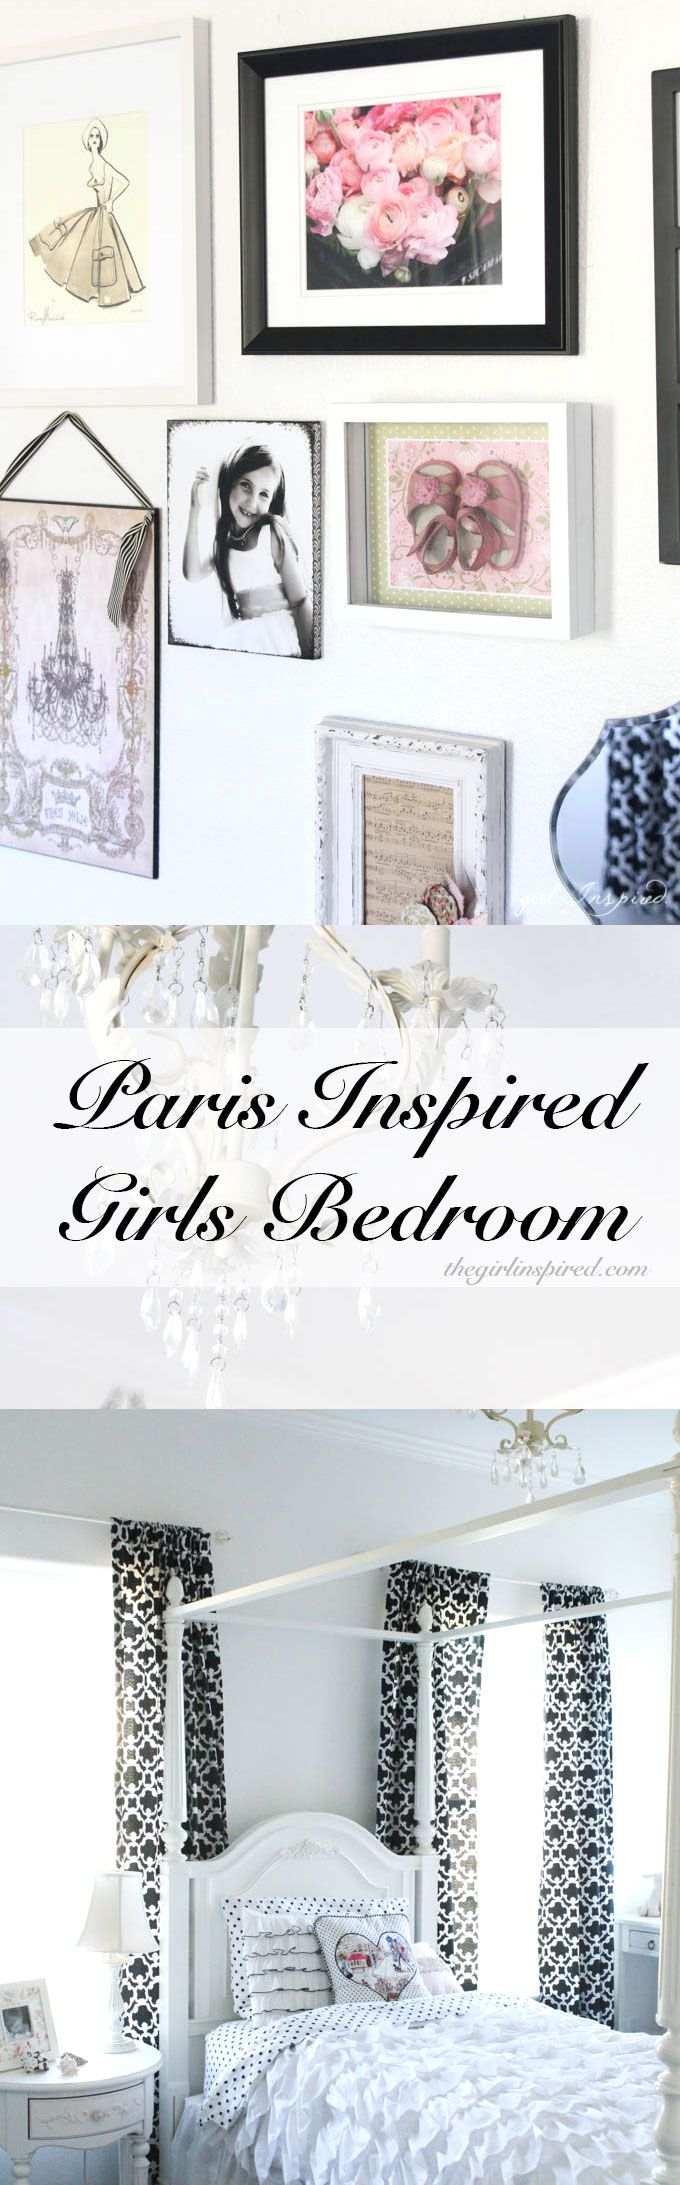 Paris Inspired Bedroom   Pretty Girlu0027s Bedroom!